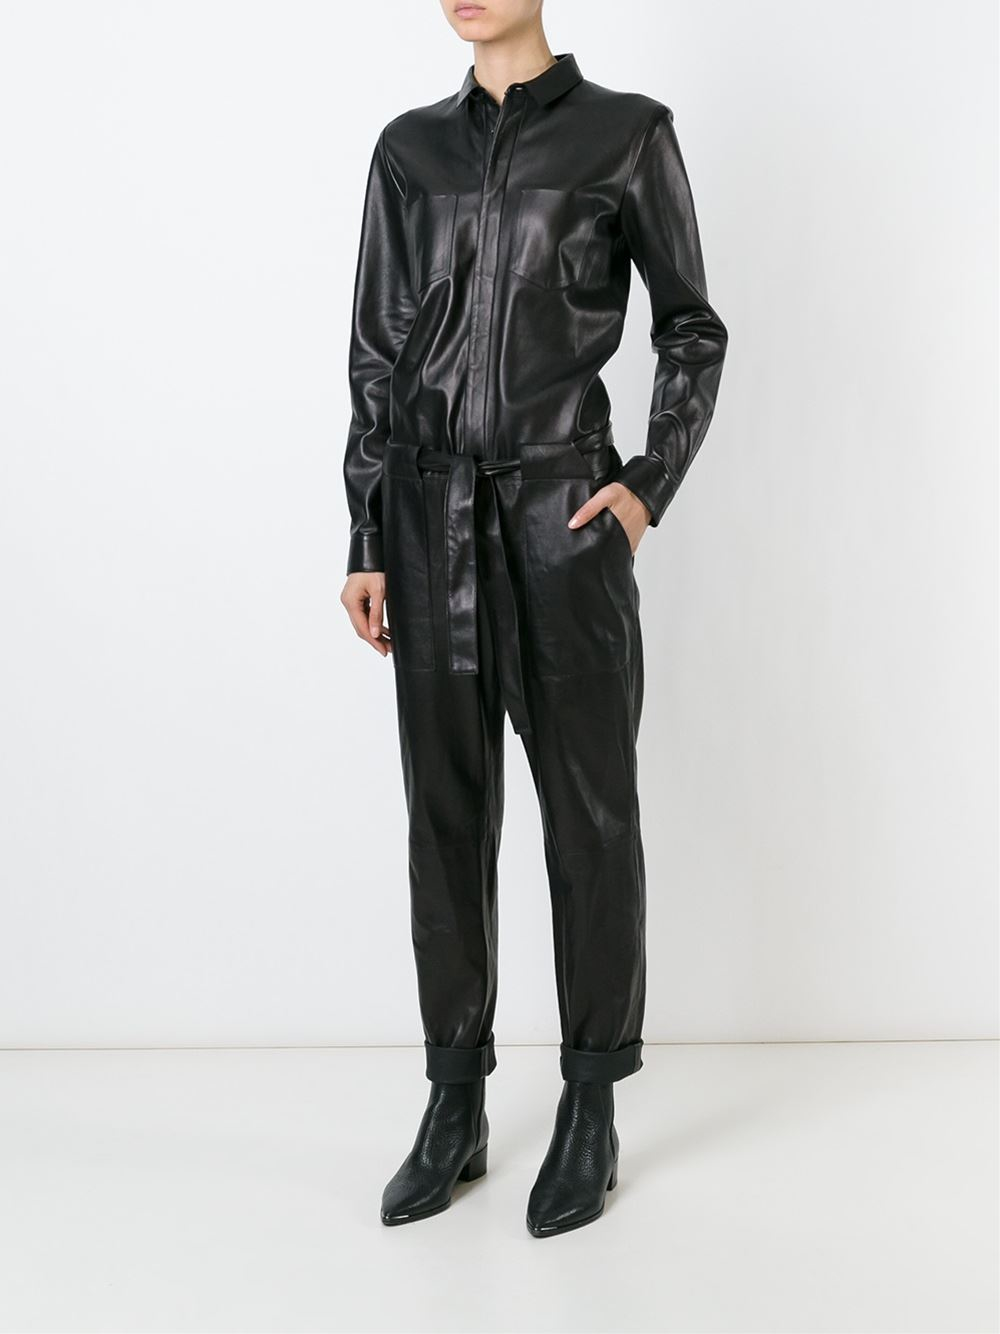 Cheap Leather Jackets For Women